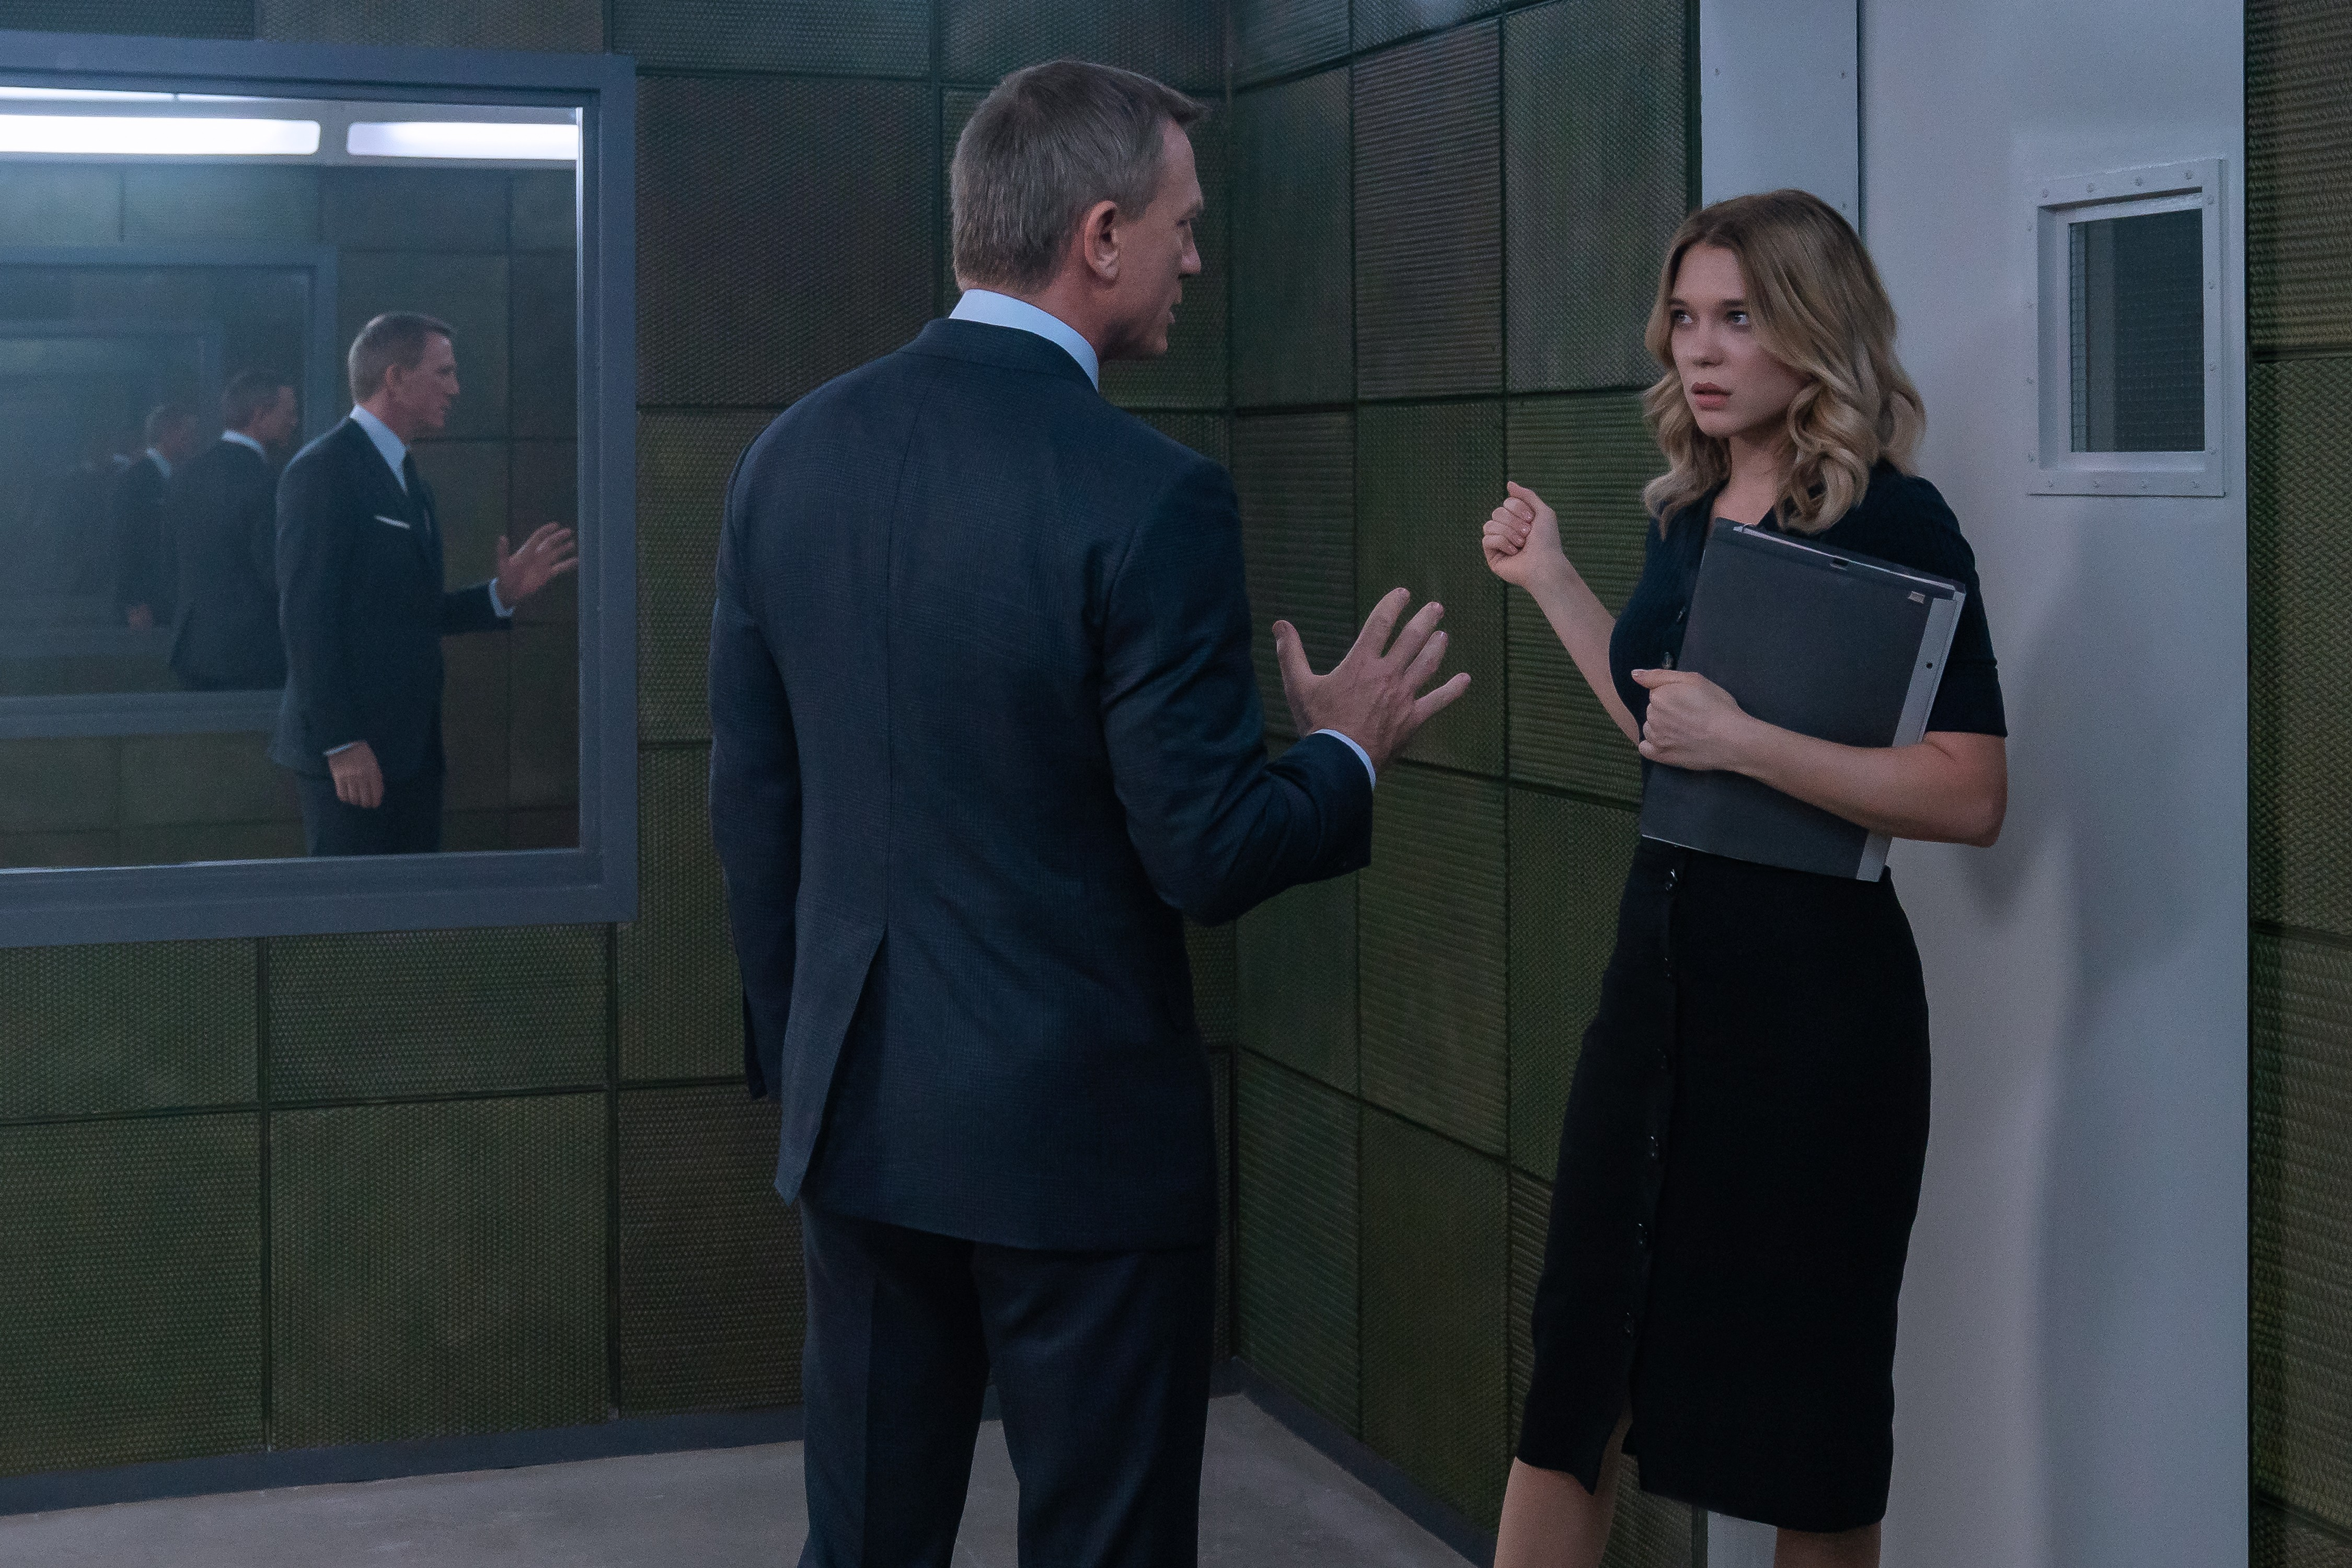 James Bond (Daniel Craig) in discussion with Dr. Madeleine Swann (Léa Seydoux) in